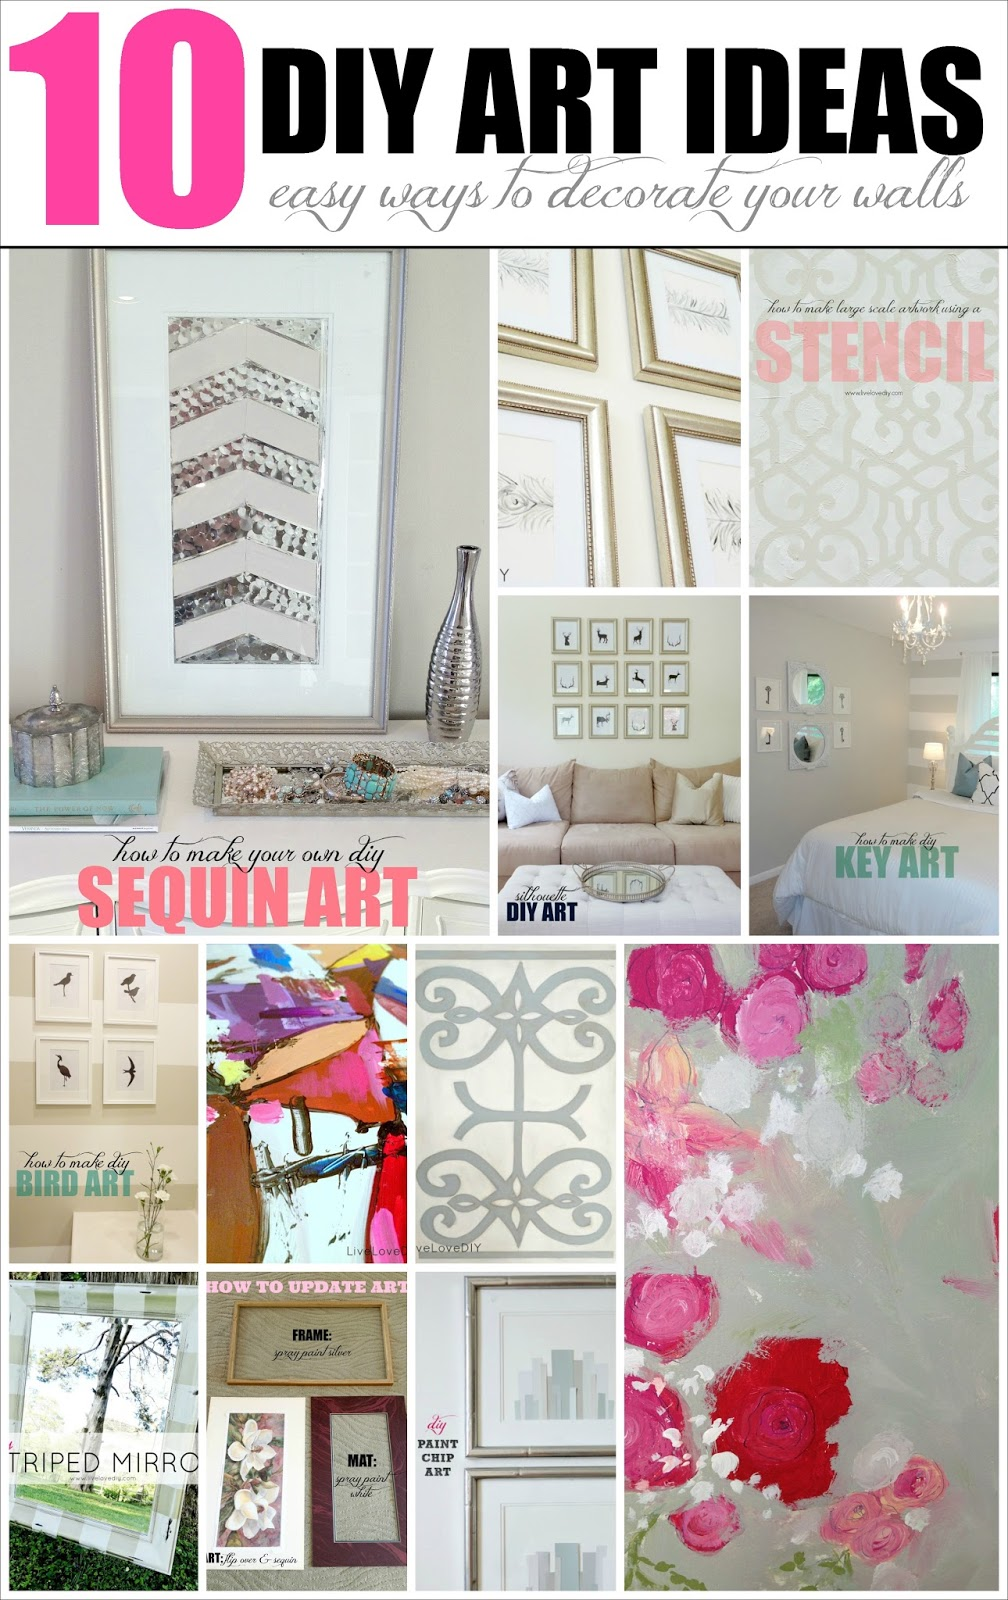 Livelovediy 10 diy art ideas easy ways to decorate your walls follow solutioingenieria Images